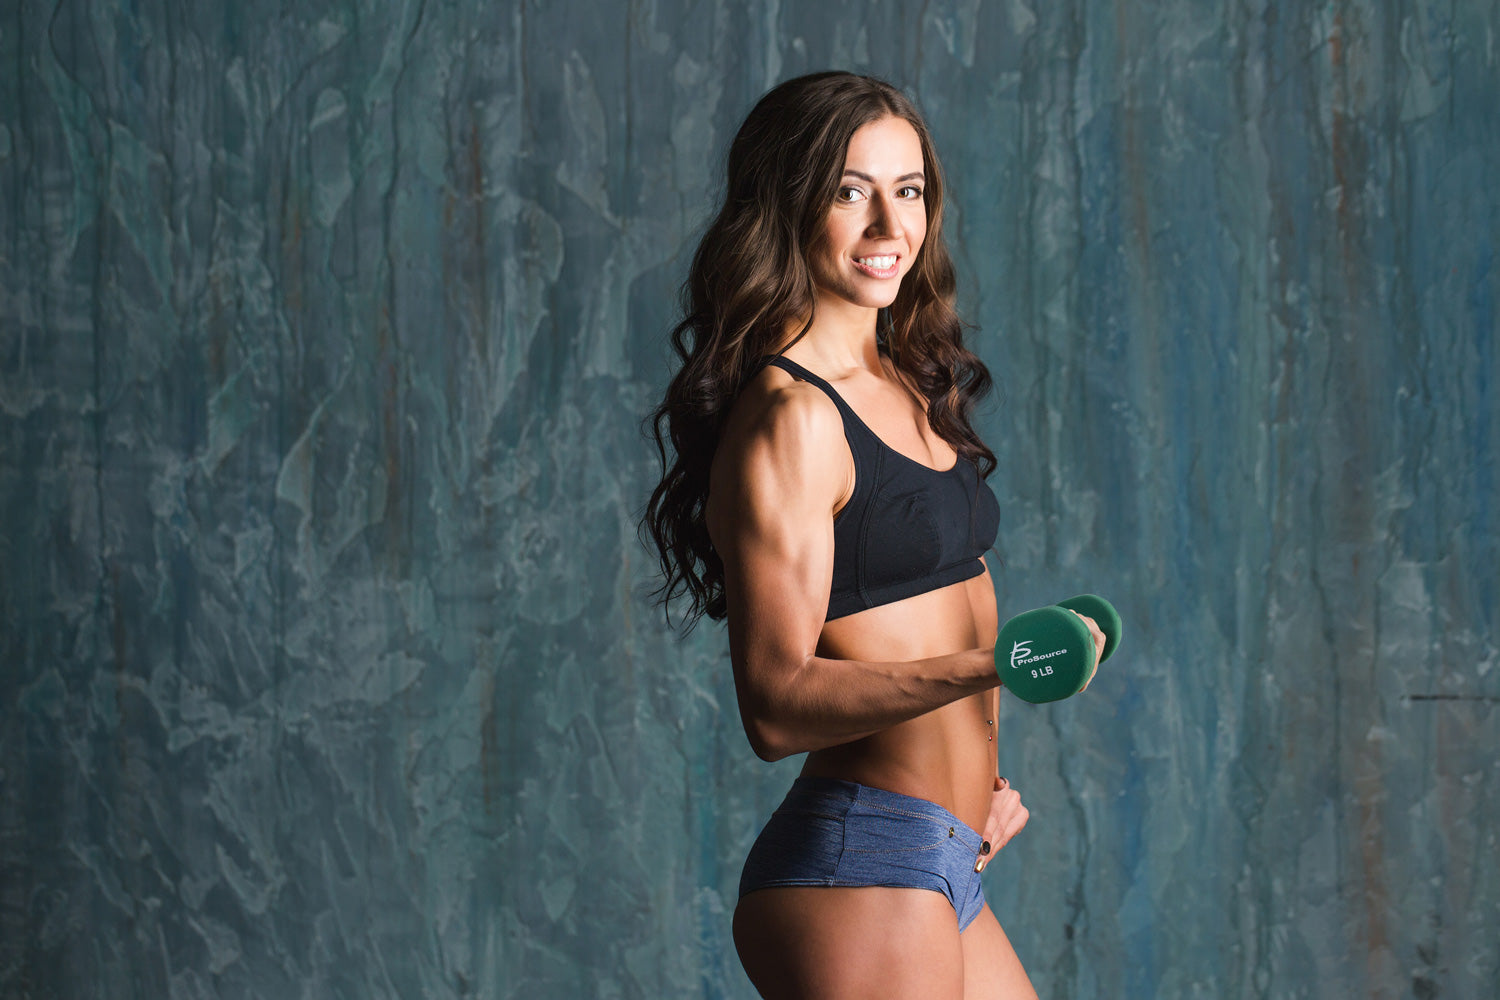 How to Actually Keep Your New Year's Resolution to Get in Shape - Buy Neoprene Dumbbells